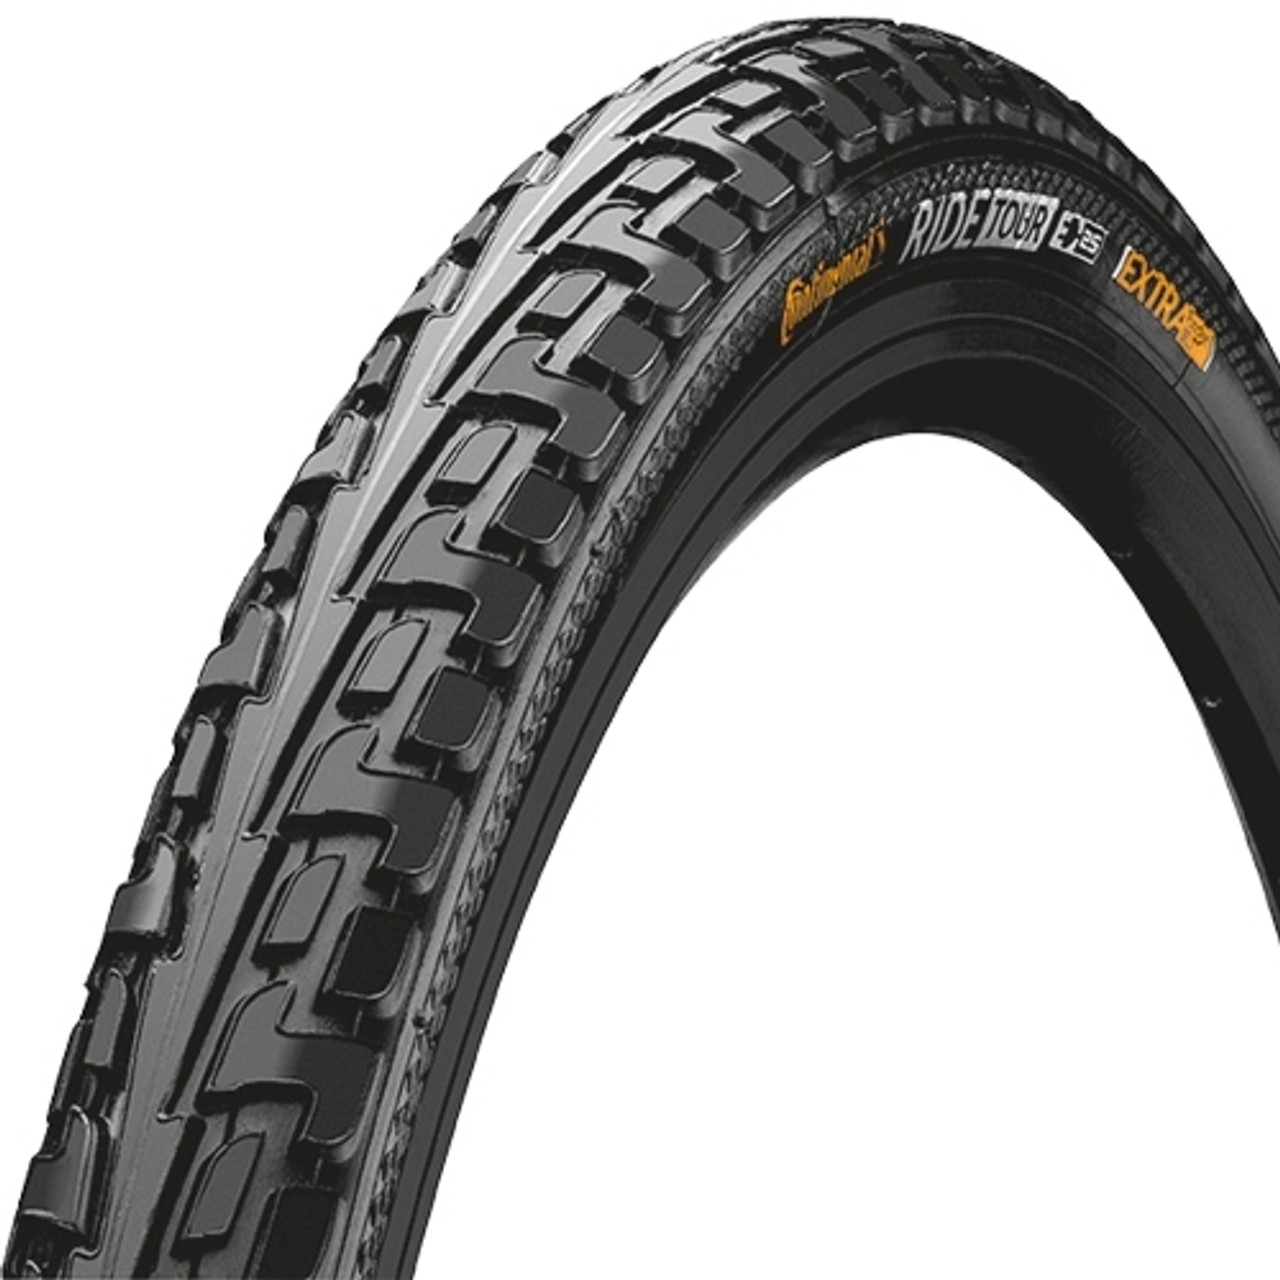 Continental Ride Tour Rigid Road Tyre